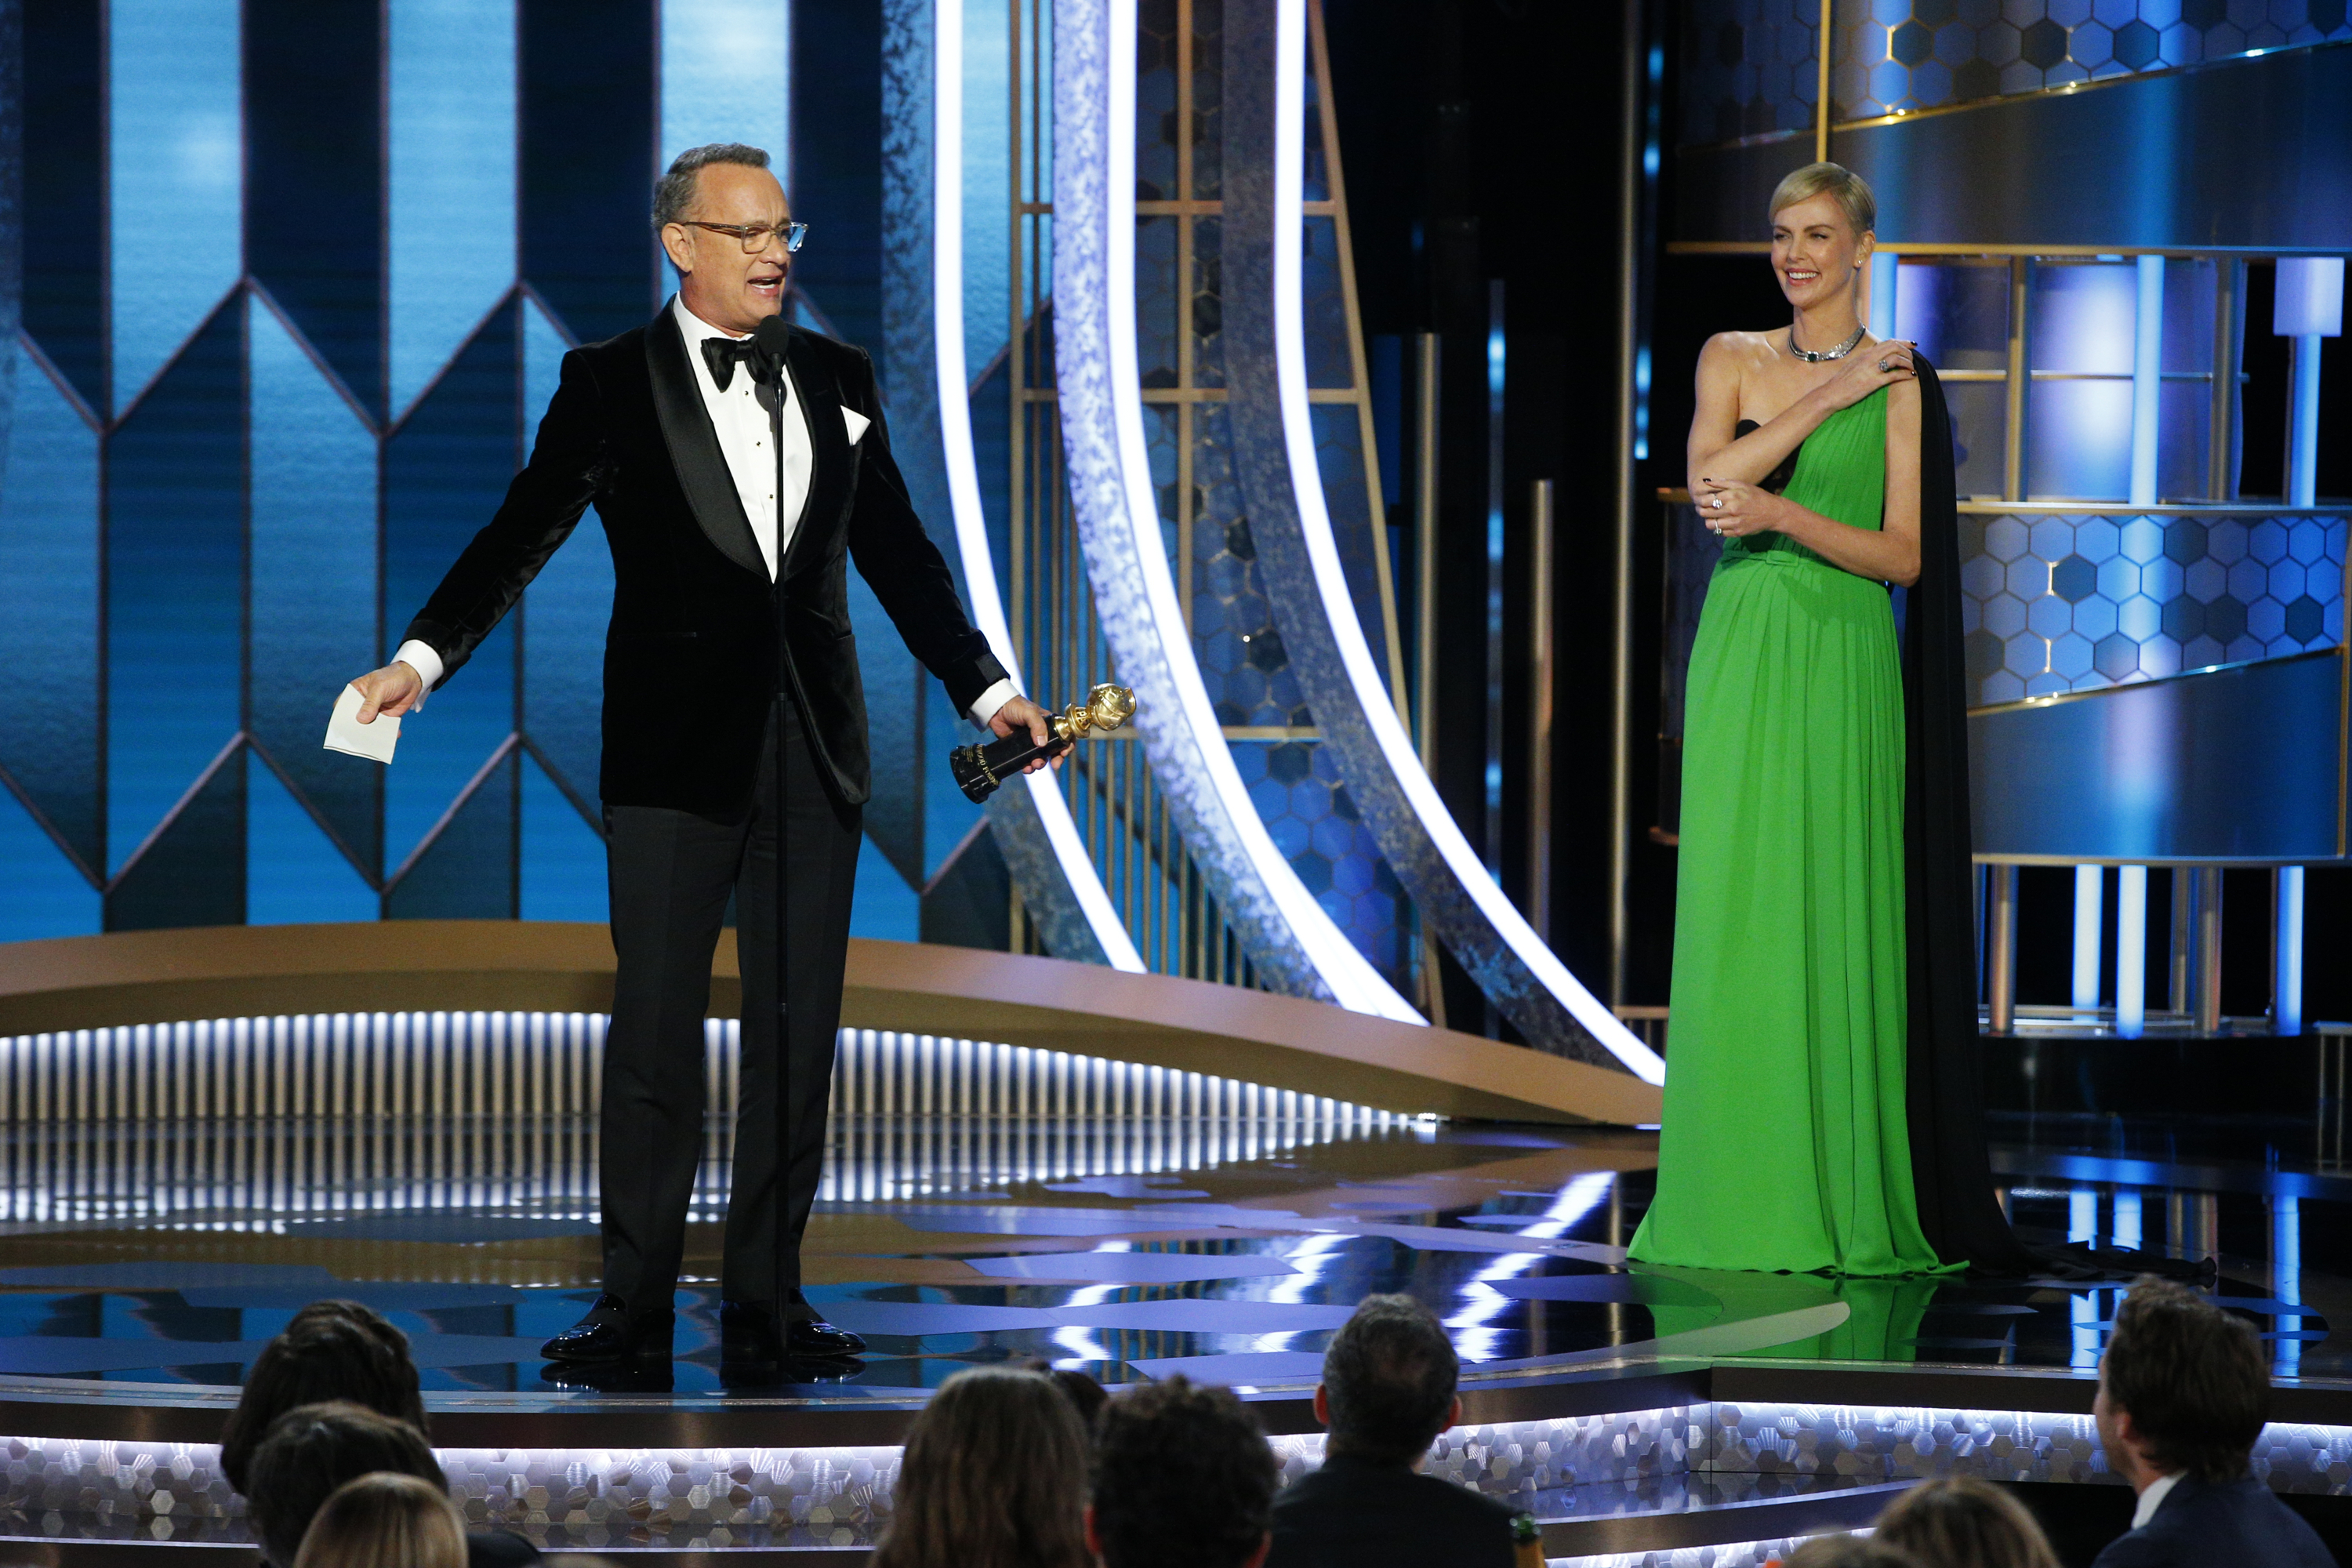 Tom Hanks accepts the Cecil B, DeMille Award, presented by Charlize Theron, onstage during the 77th Annual Golden Globe Awards on Jan. 5, 2020 in Beverly Hills, Calif.